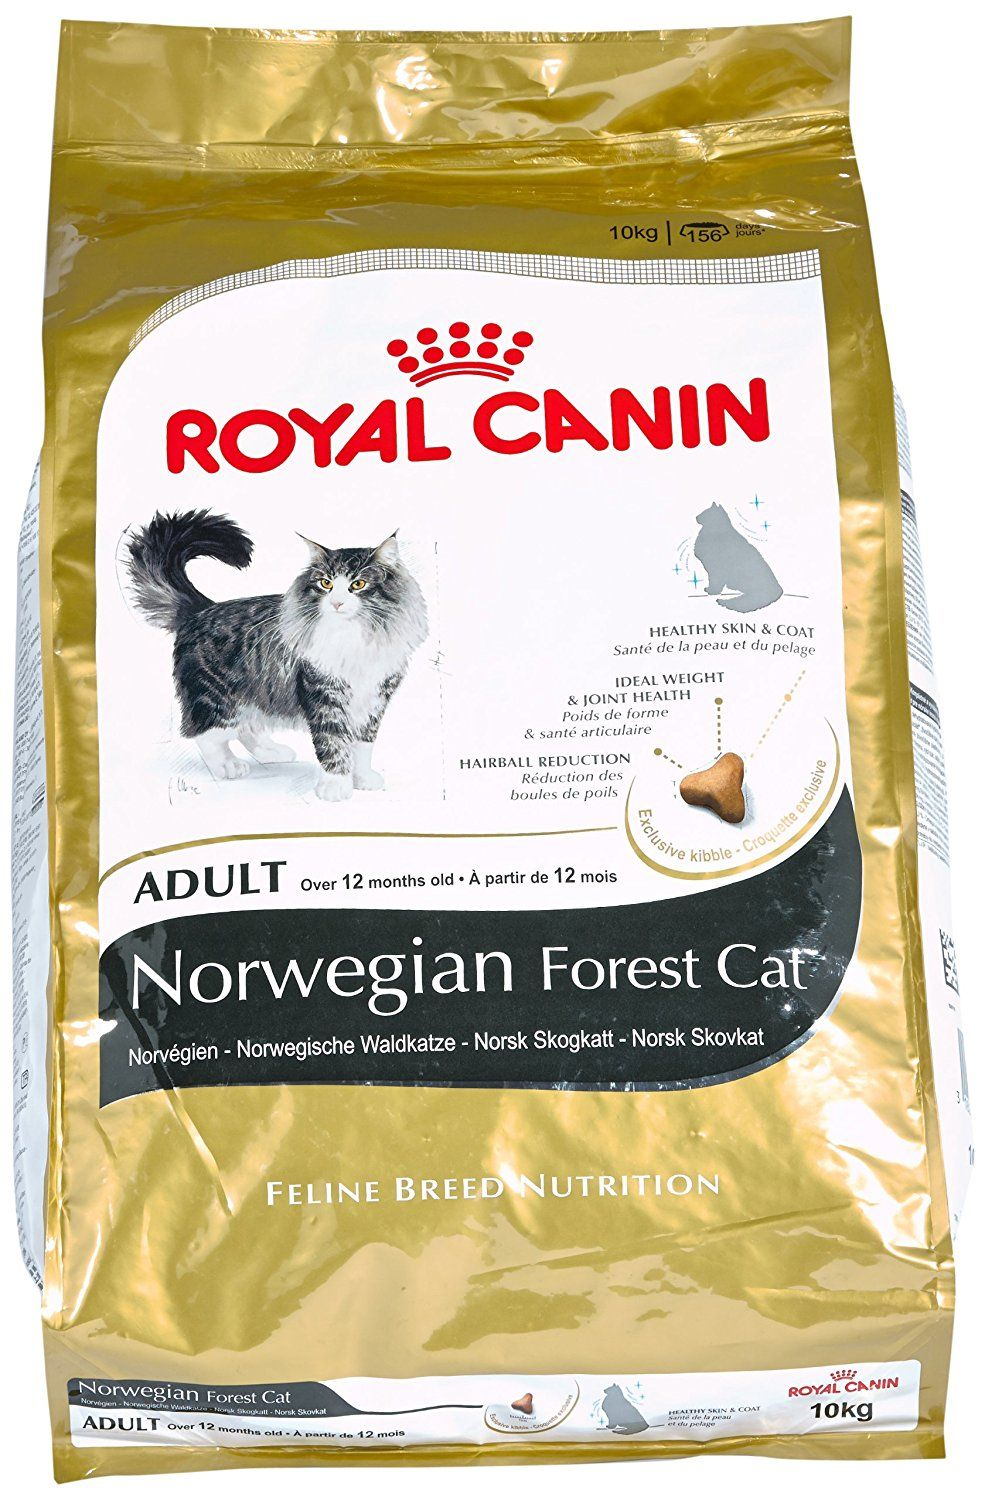 Royal Canin Cat Food Norwegian Forest 10 Kg Read More Details By Clicking On The Image Catfood Cat Food Food Snack Recipes